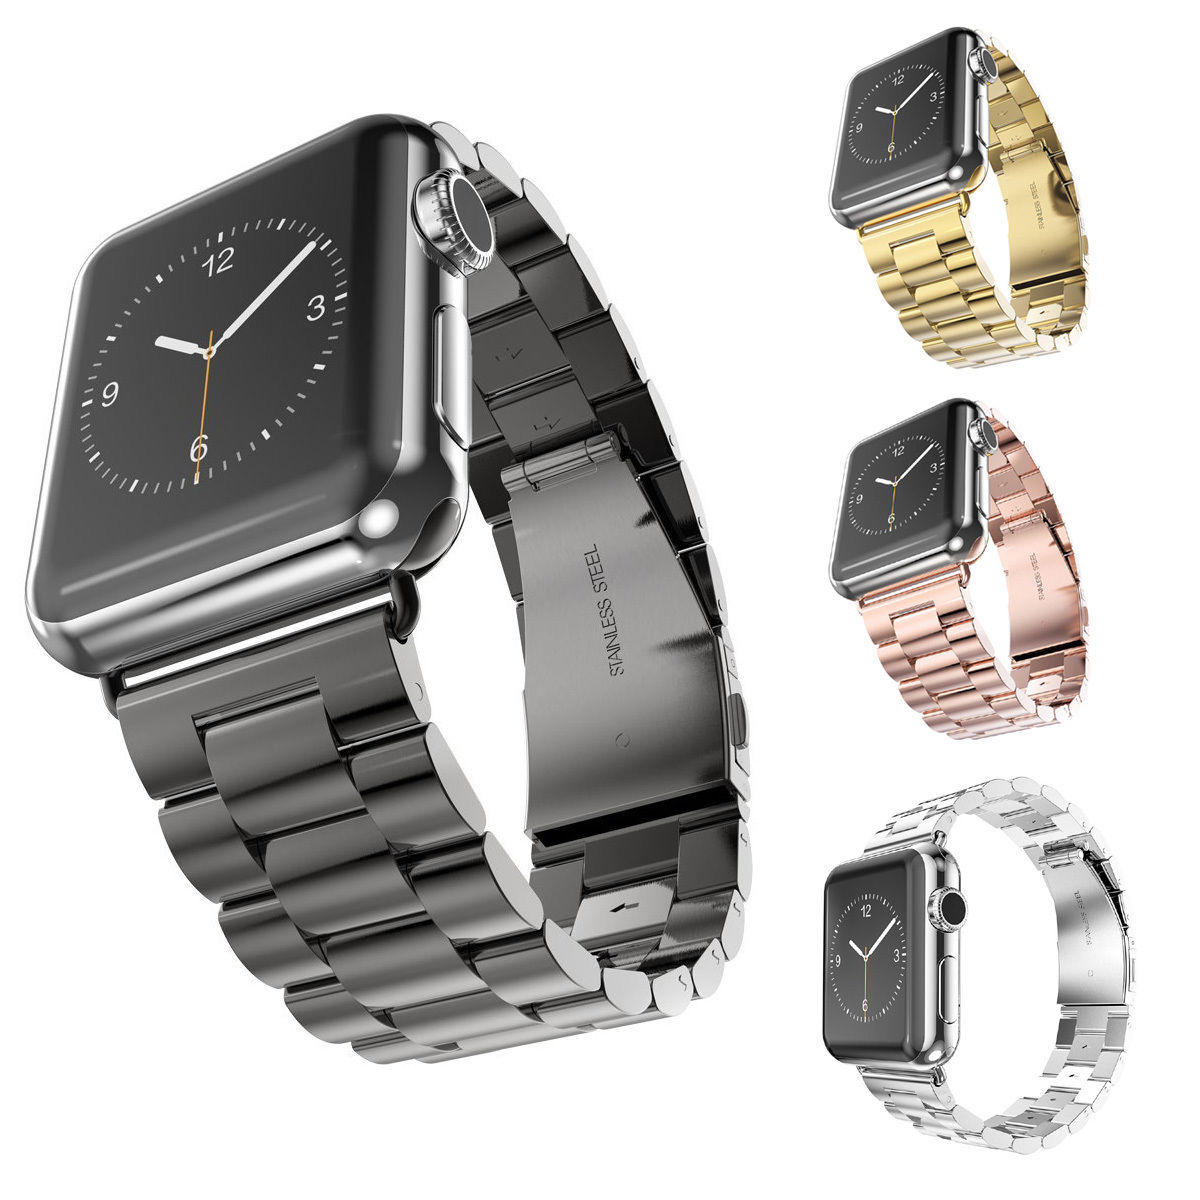 Stainless Steel font b Watch b font Band For iWatch font b Apple b font font